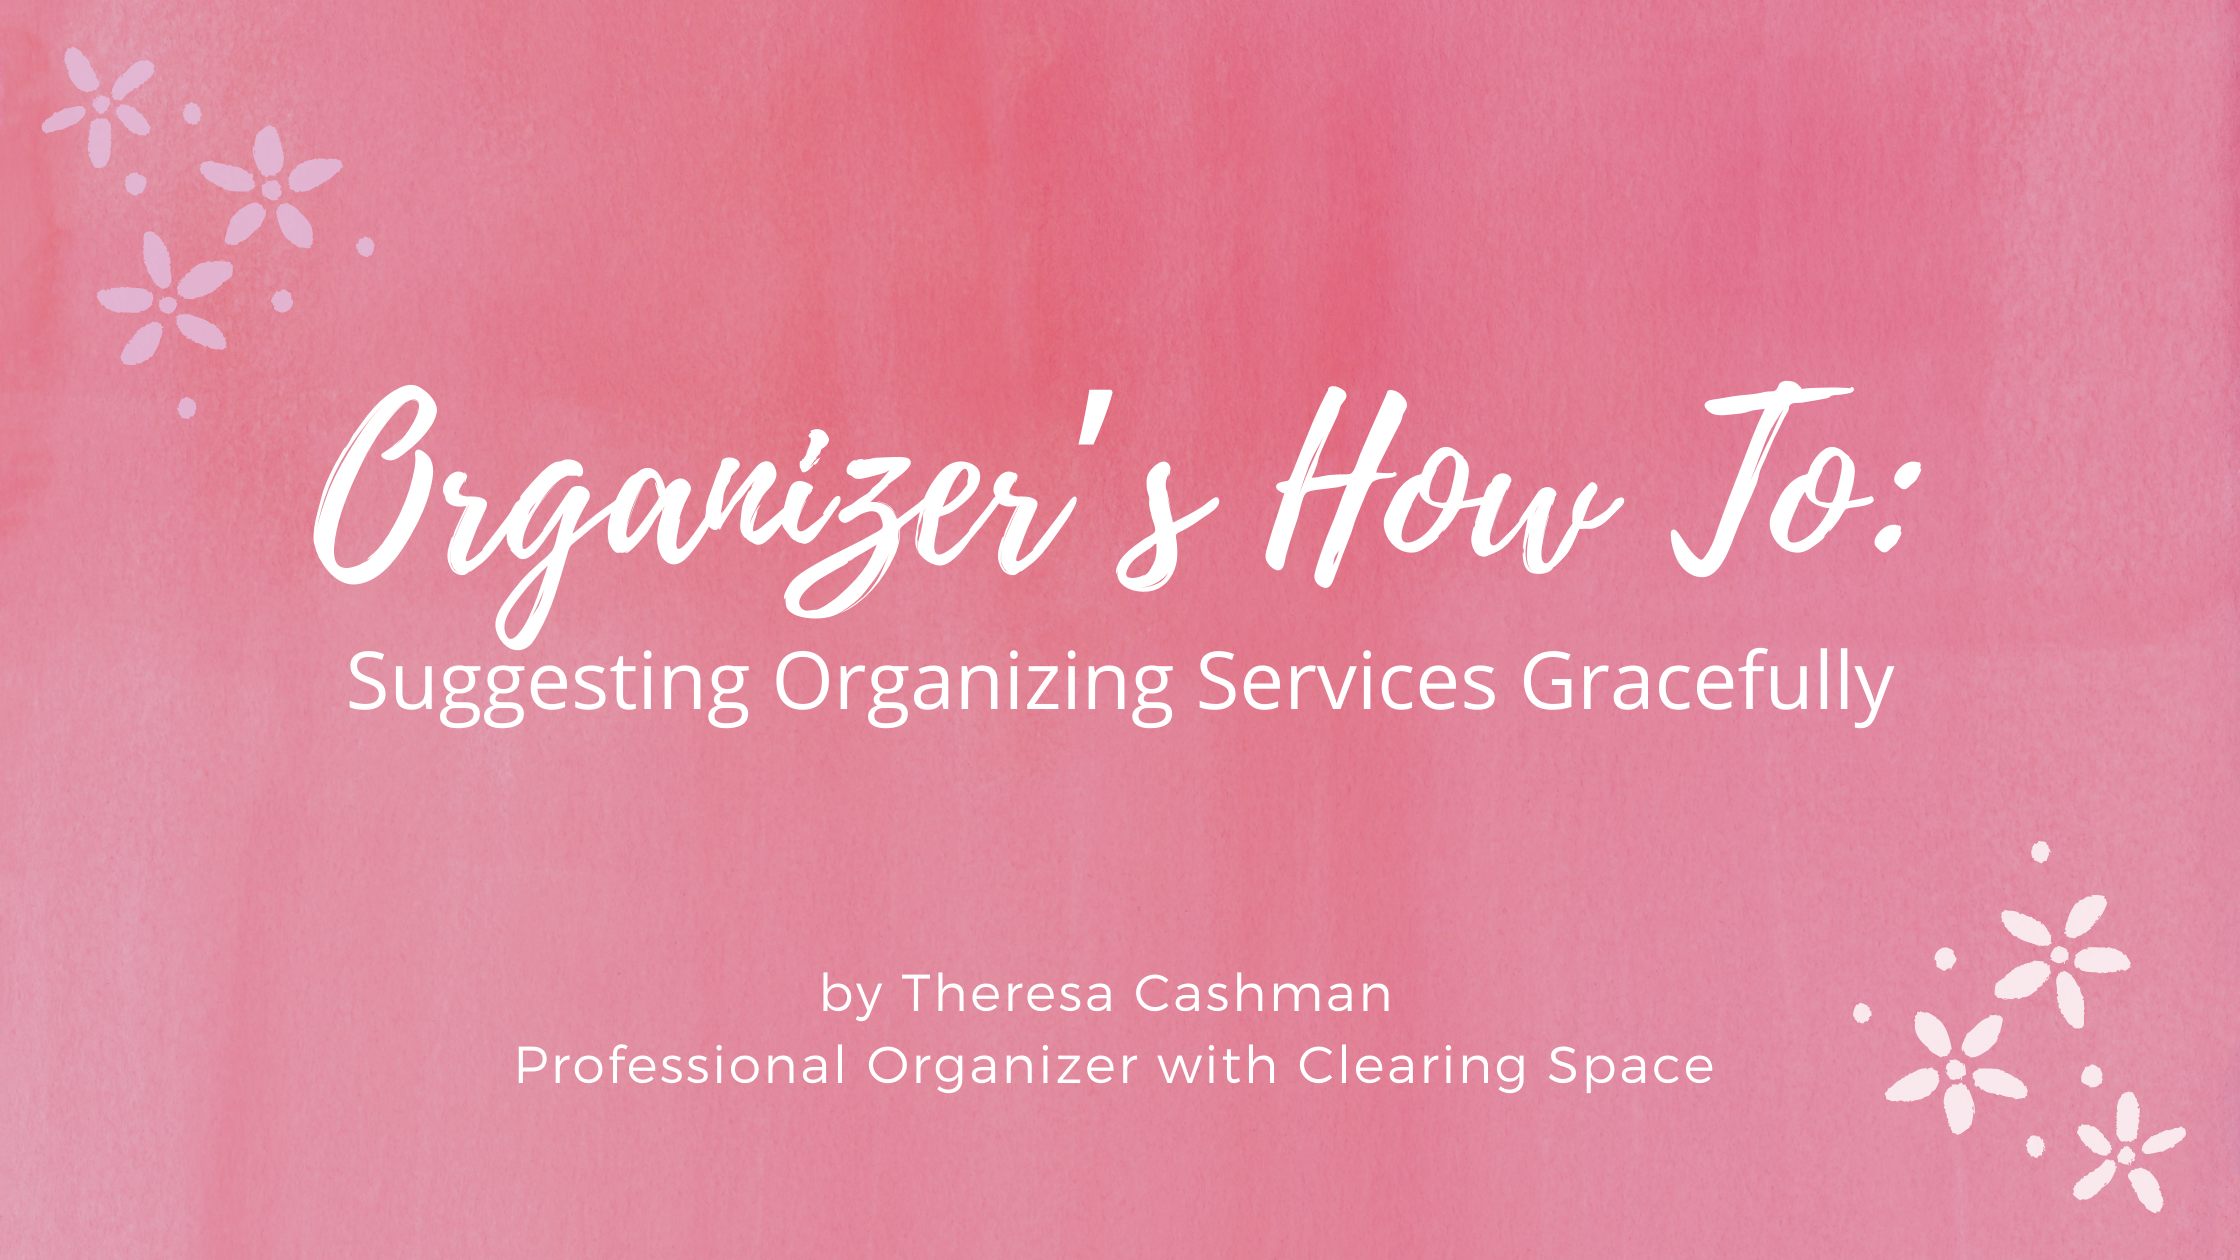 organizers how to suggest services